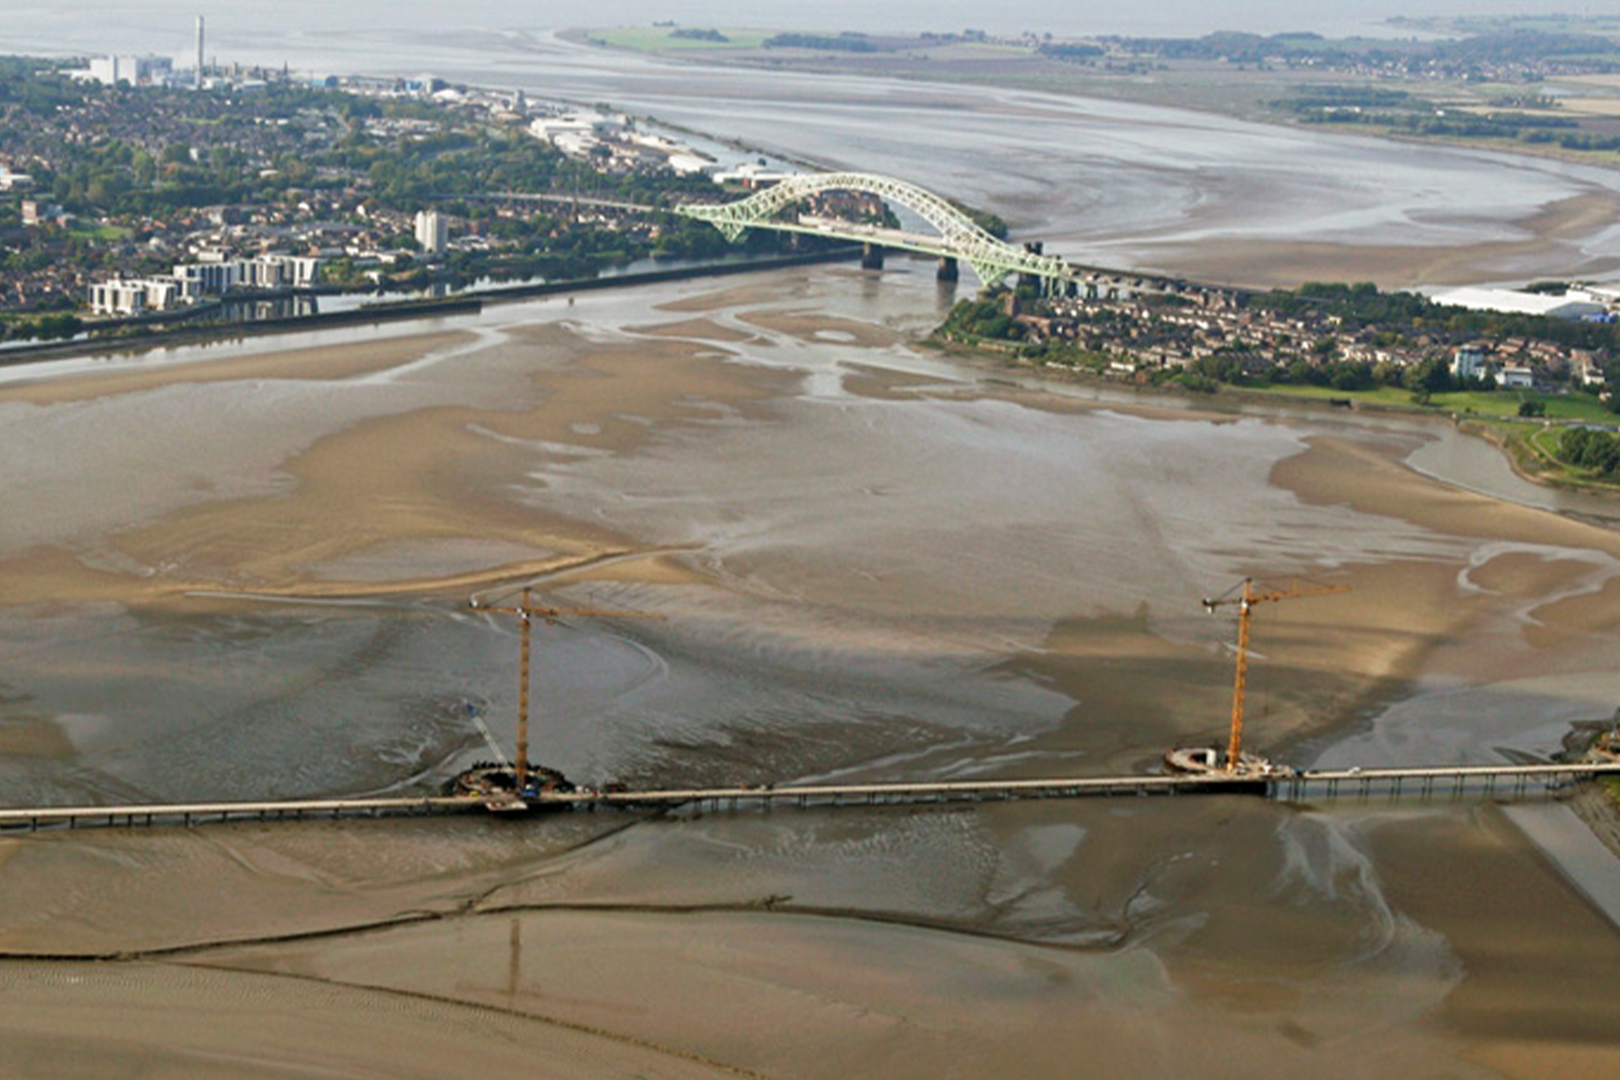 Lateral view of the future Mersey Bridge